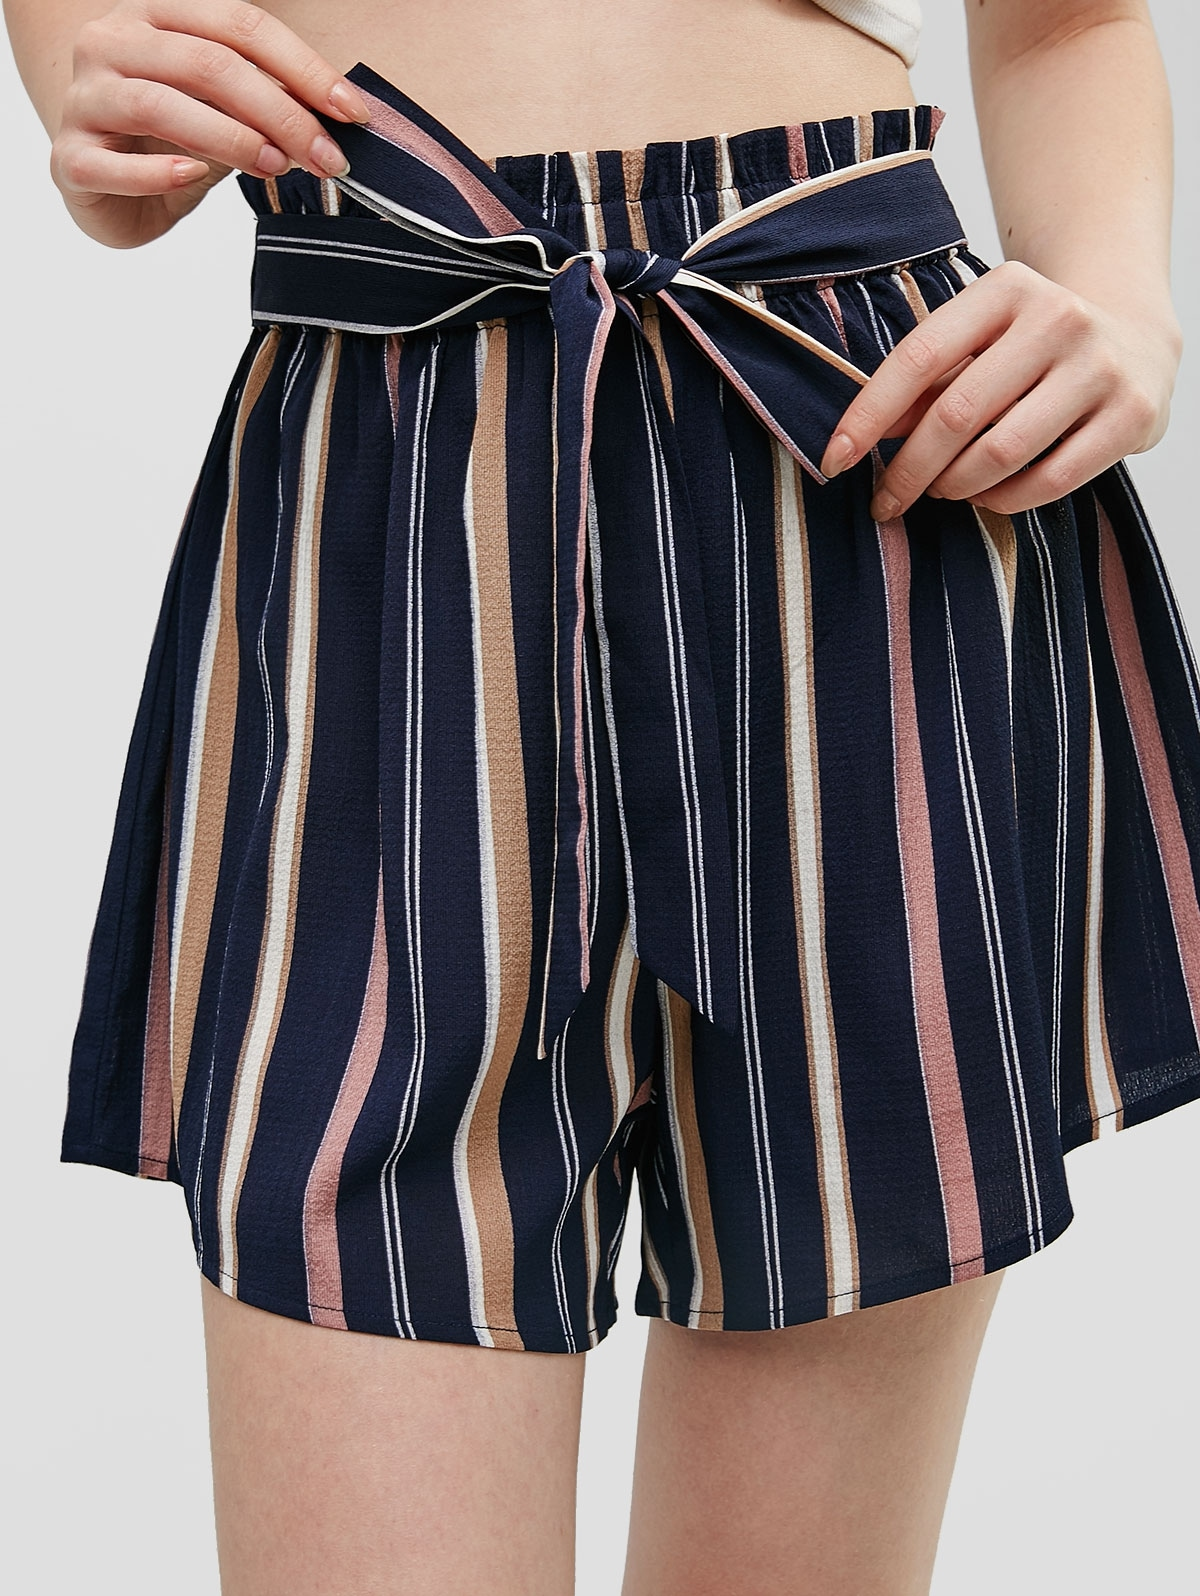 Knotted Stripes High Waisted Shorts